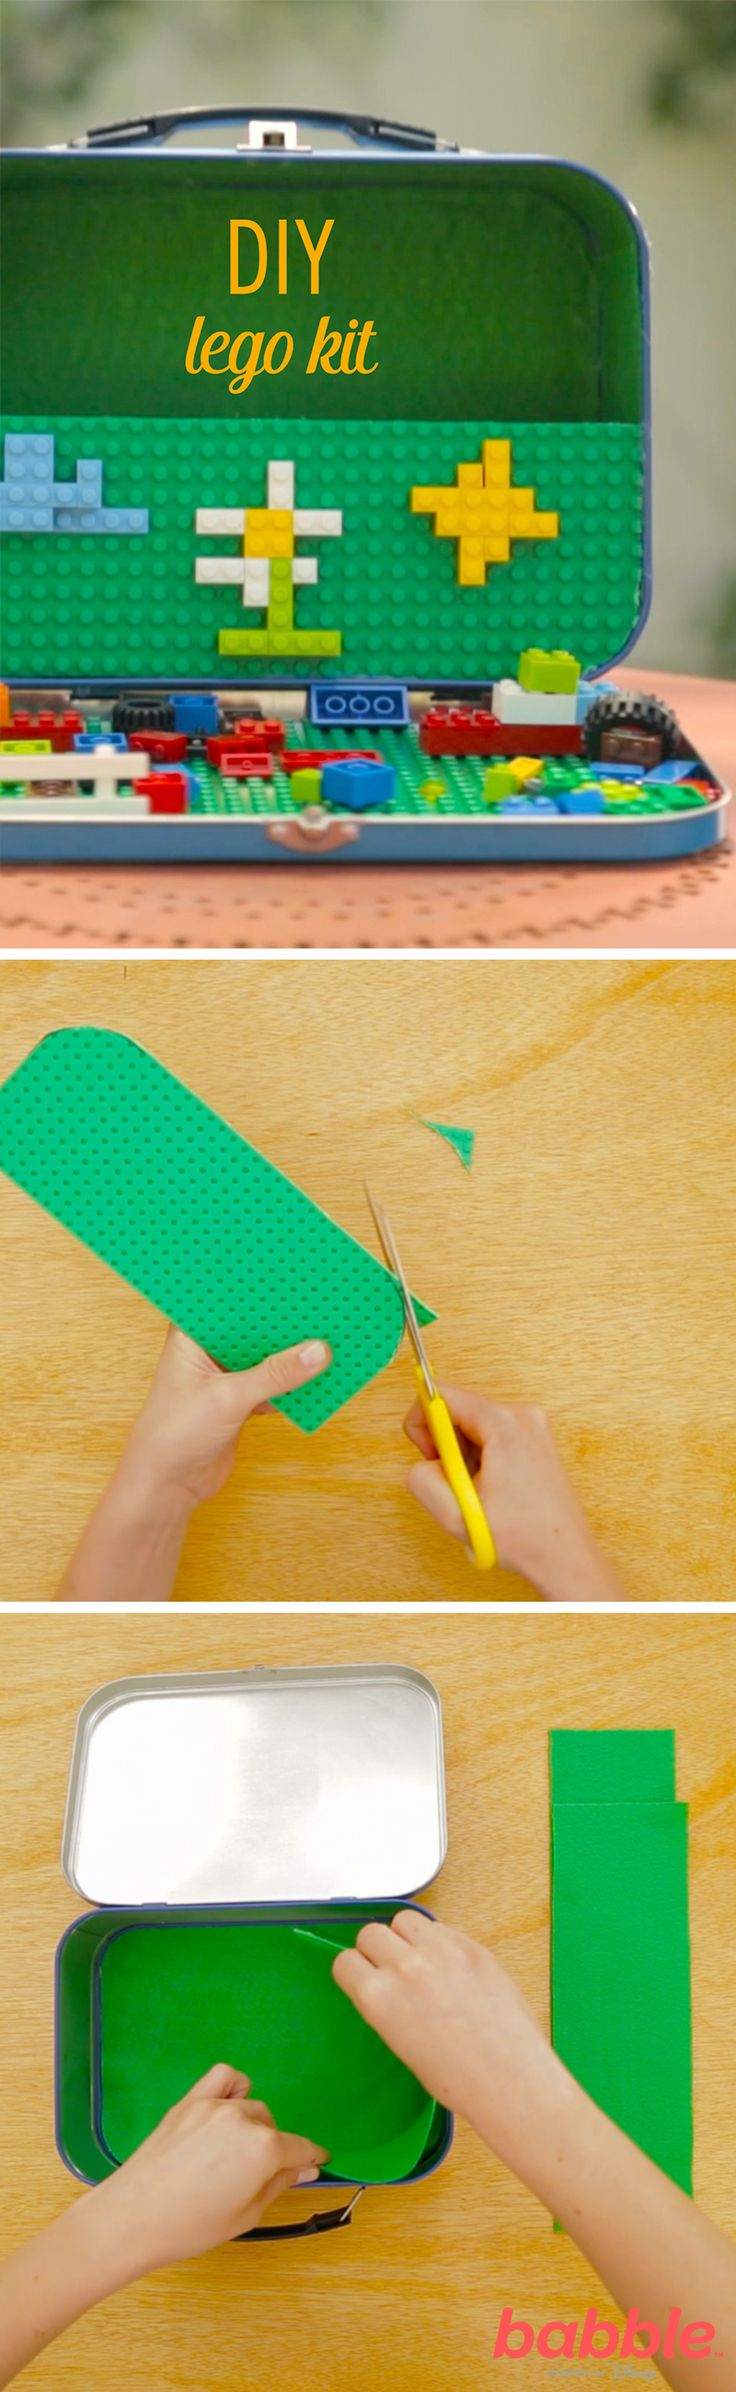 Summer Hack: DIY Portable Lego Kit | Ideas | Pinterest ...